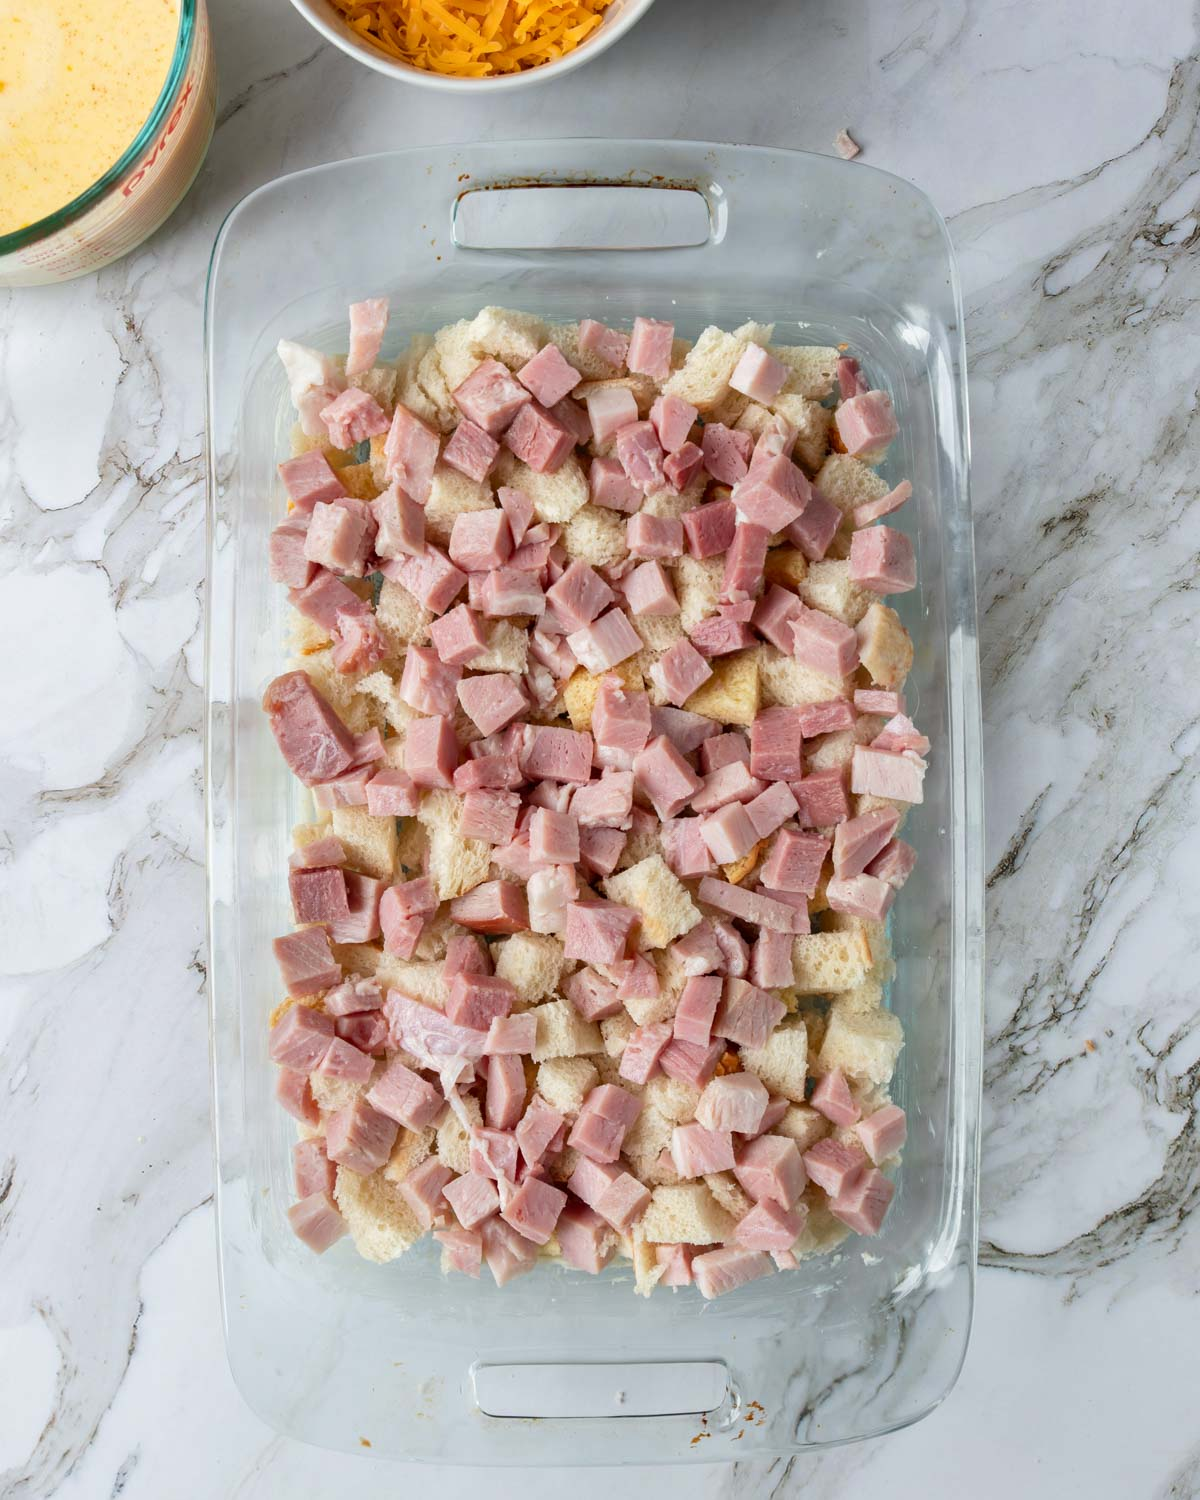 bread cubes and cubed ham in a buttered 9x13 casserole pan